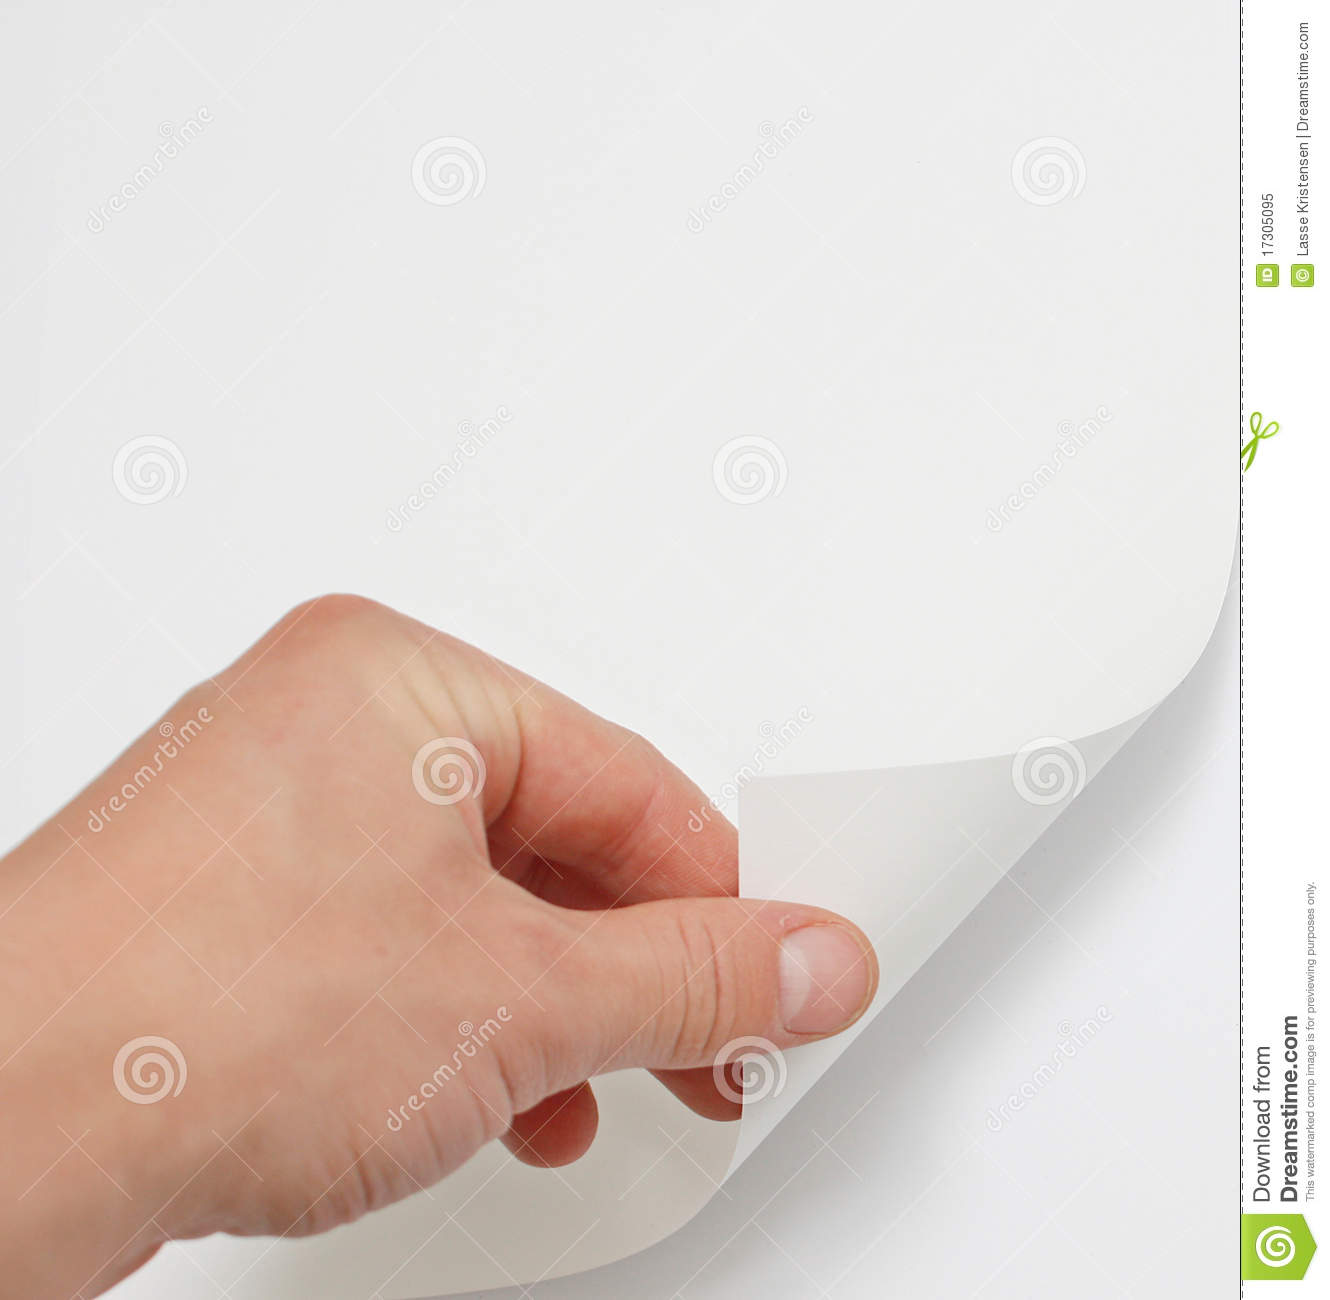 Turning page clipart svg Hand Turning Page Royalty Free Stock Image - Image: 35940816 svg